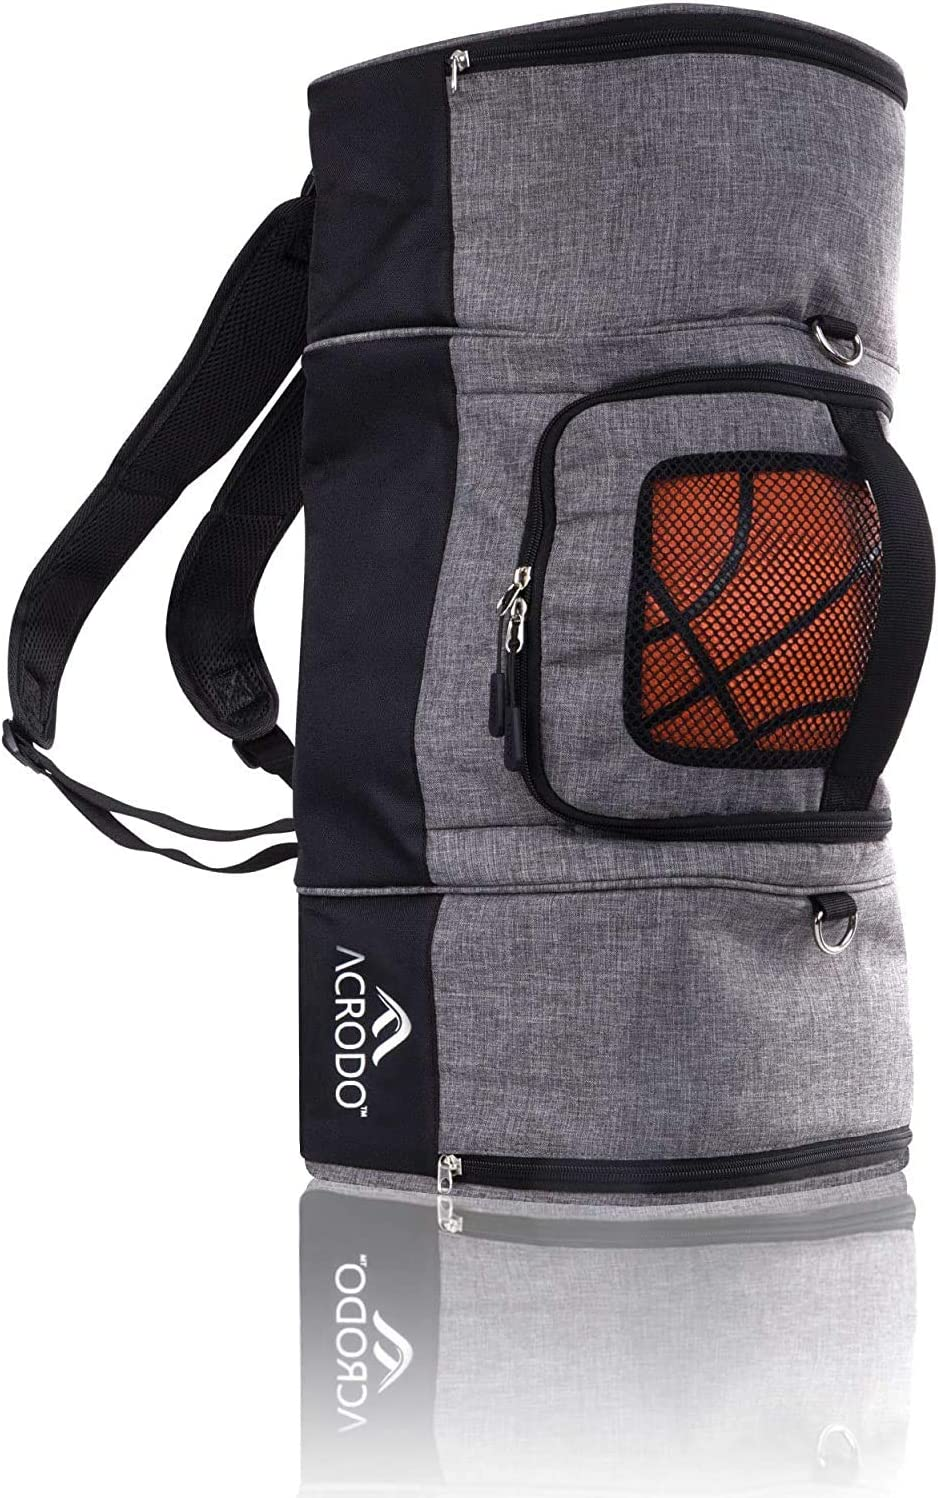 Basketball Backpack with Ball Holder, Shoe Compartment, Lunch Cooler - Sports Duffel Bag Gym Tote for Girls, Boys, Men, Women by Acrodo